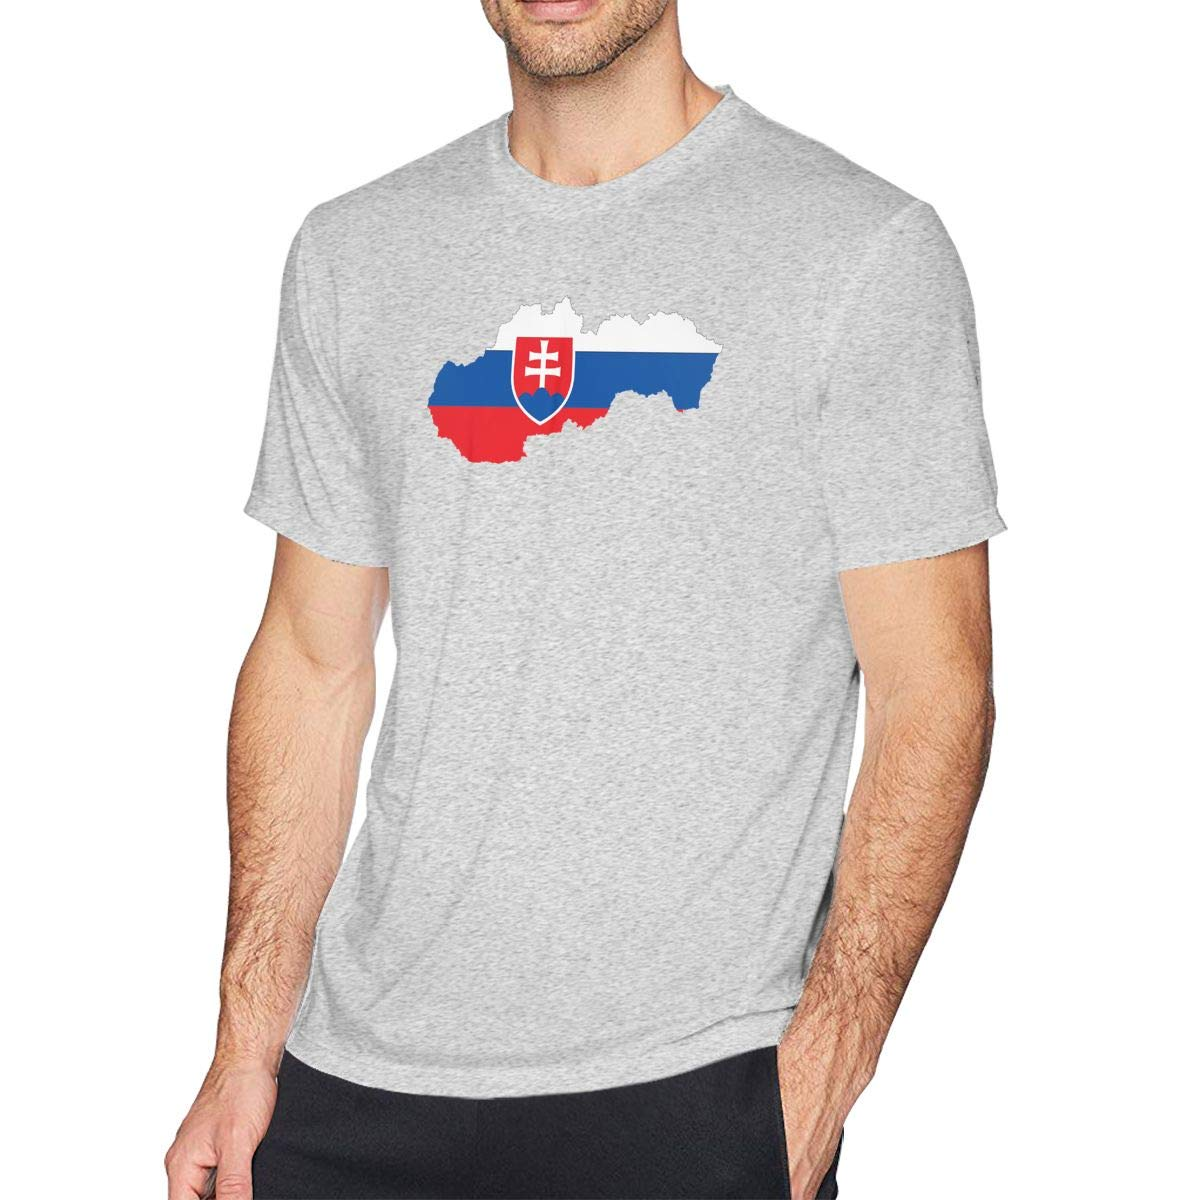 MSKKLA Flag and Map of Slovakia Slim-fit T-Shirt Mens Loose-Fit Round Collar T-Shirts T Shirts Size:S-6XL